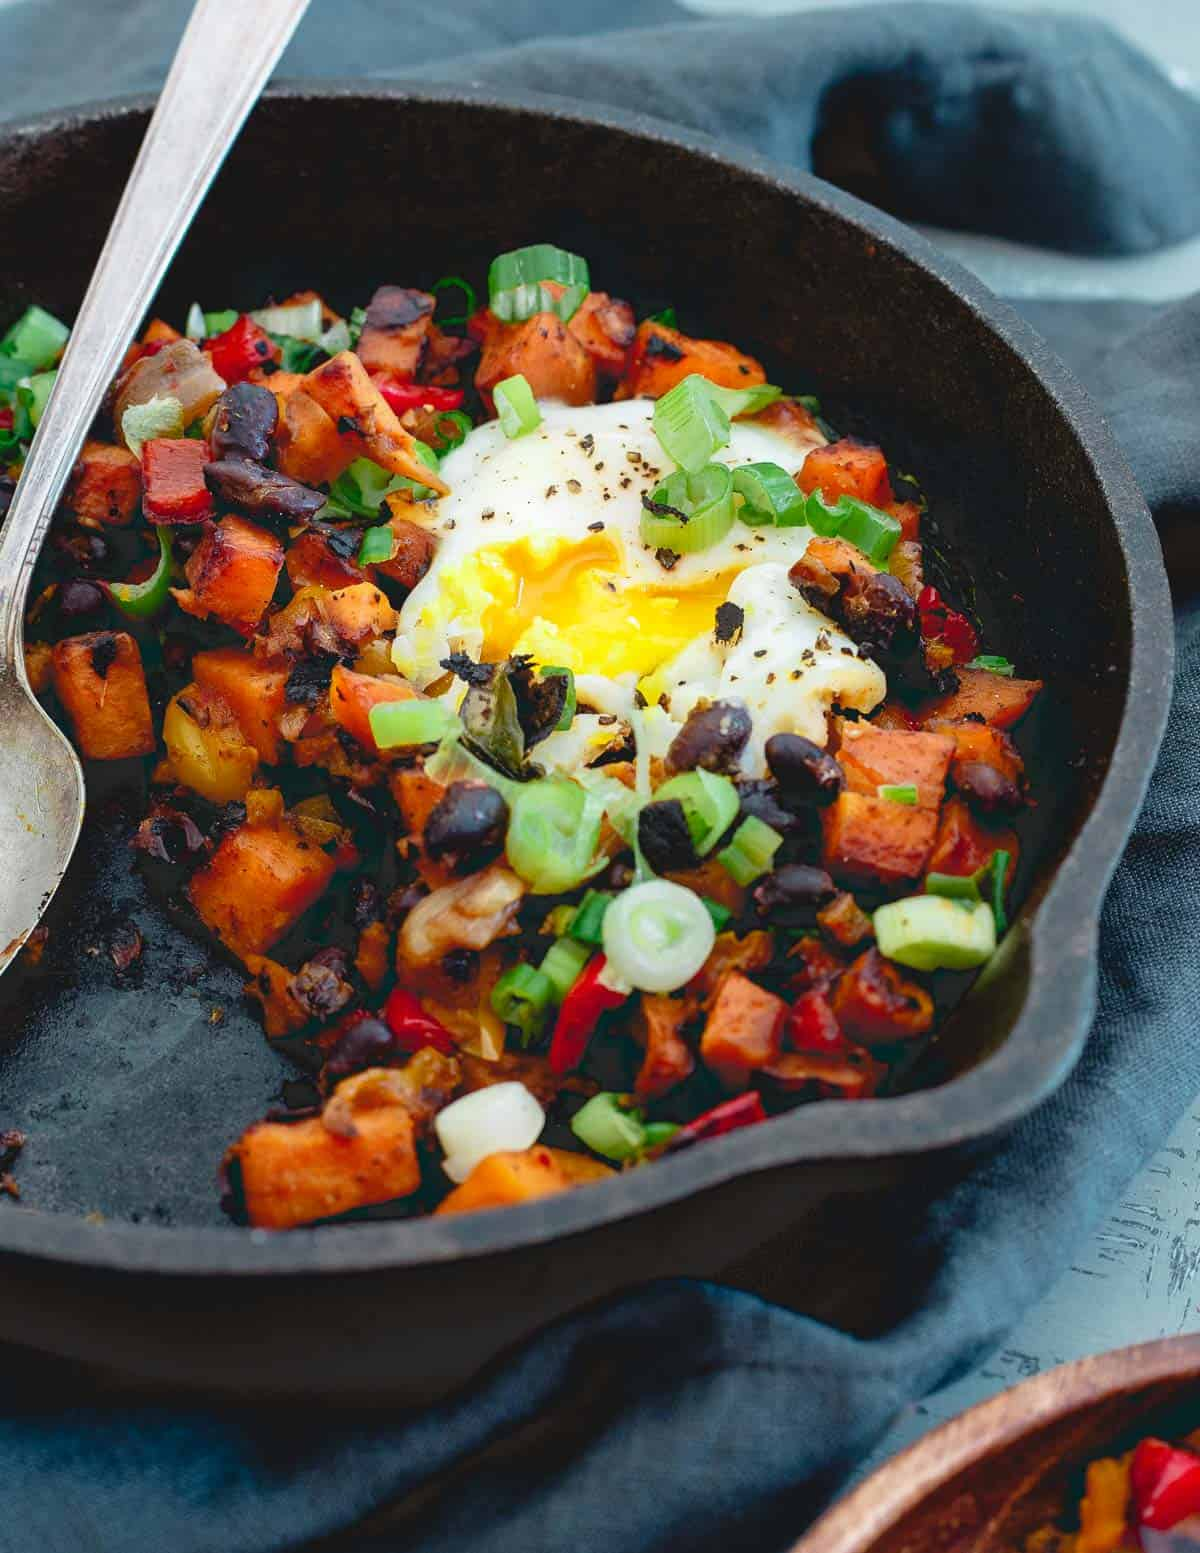 This harissa sweet potato hash is a simple, comforting meal great for breakfast, lunch or dinner!